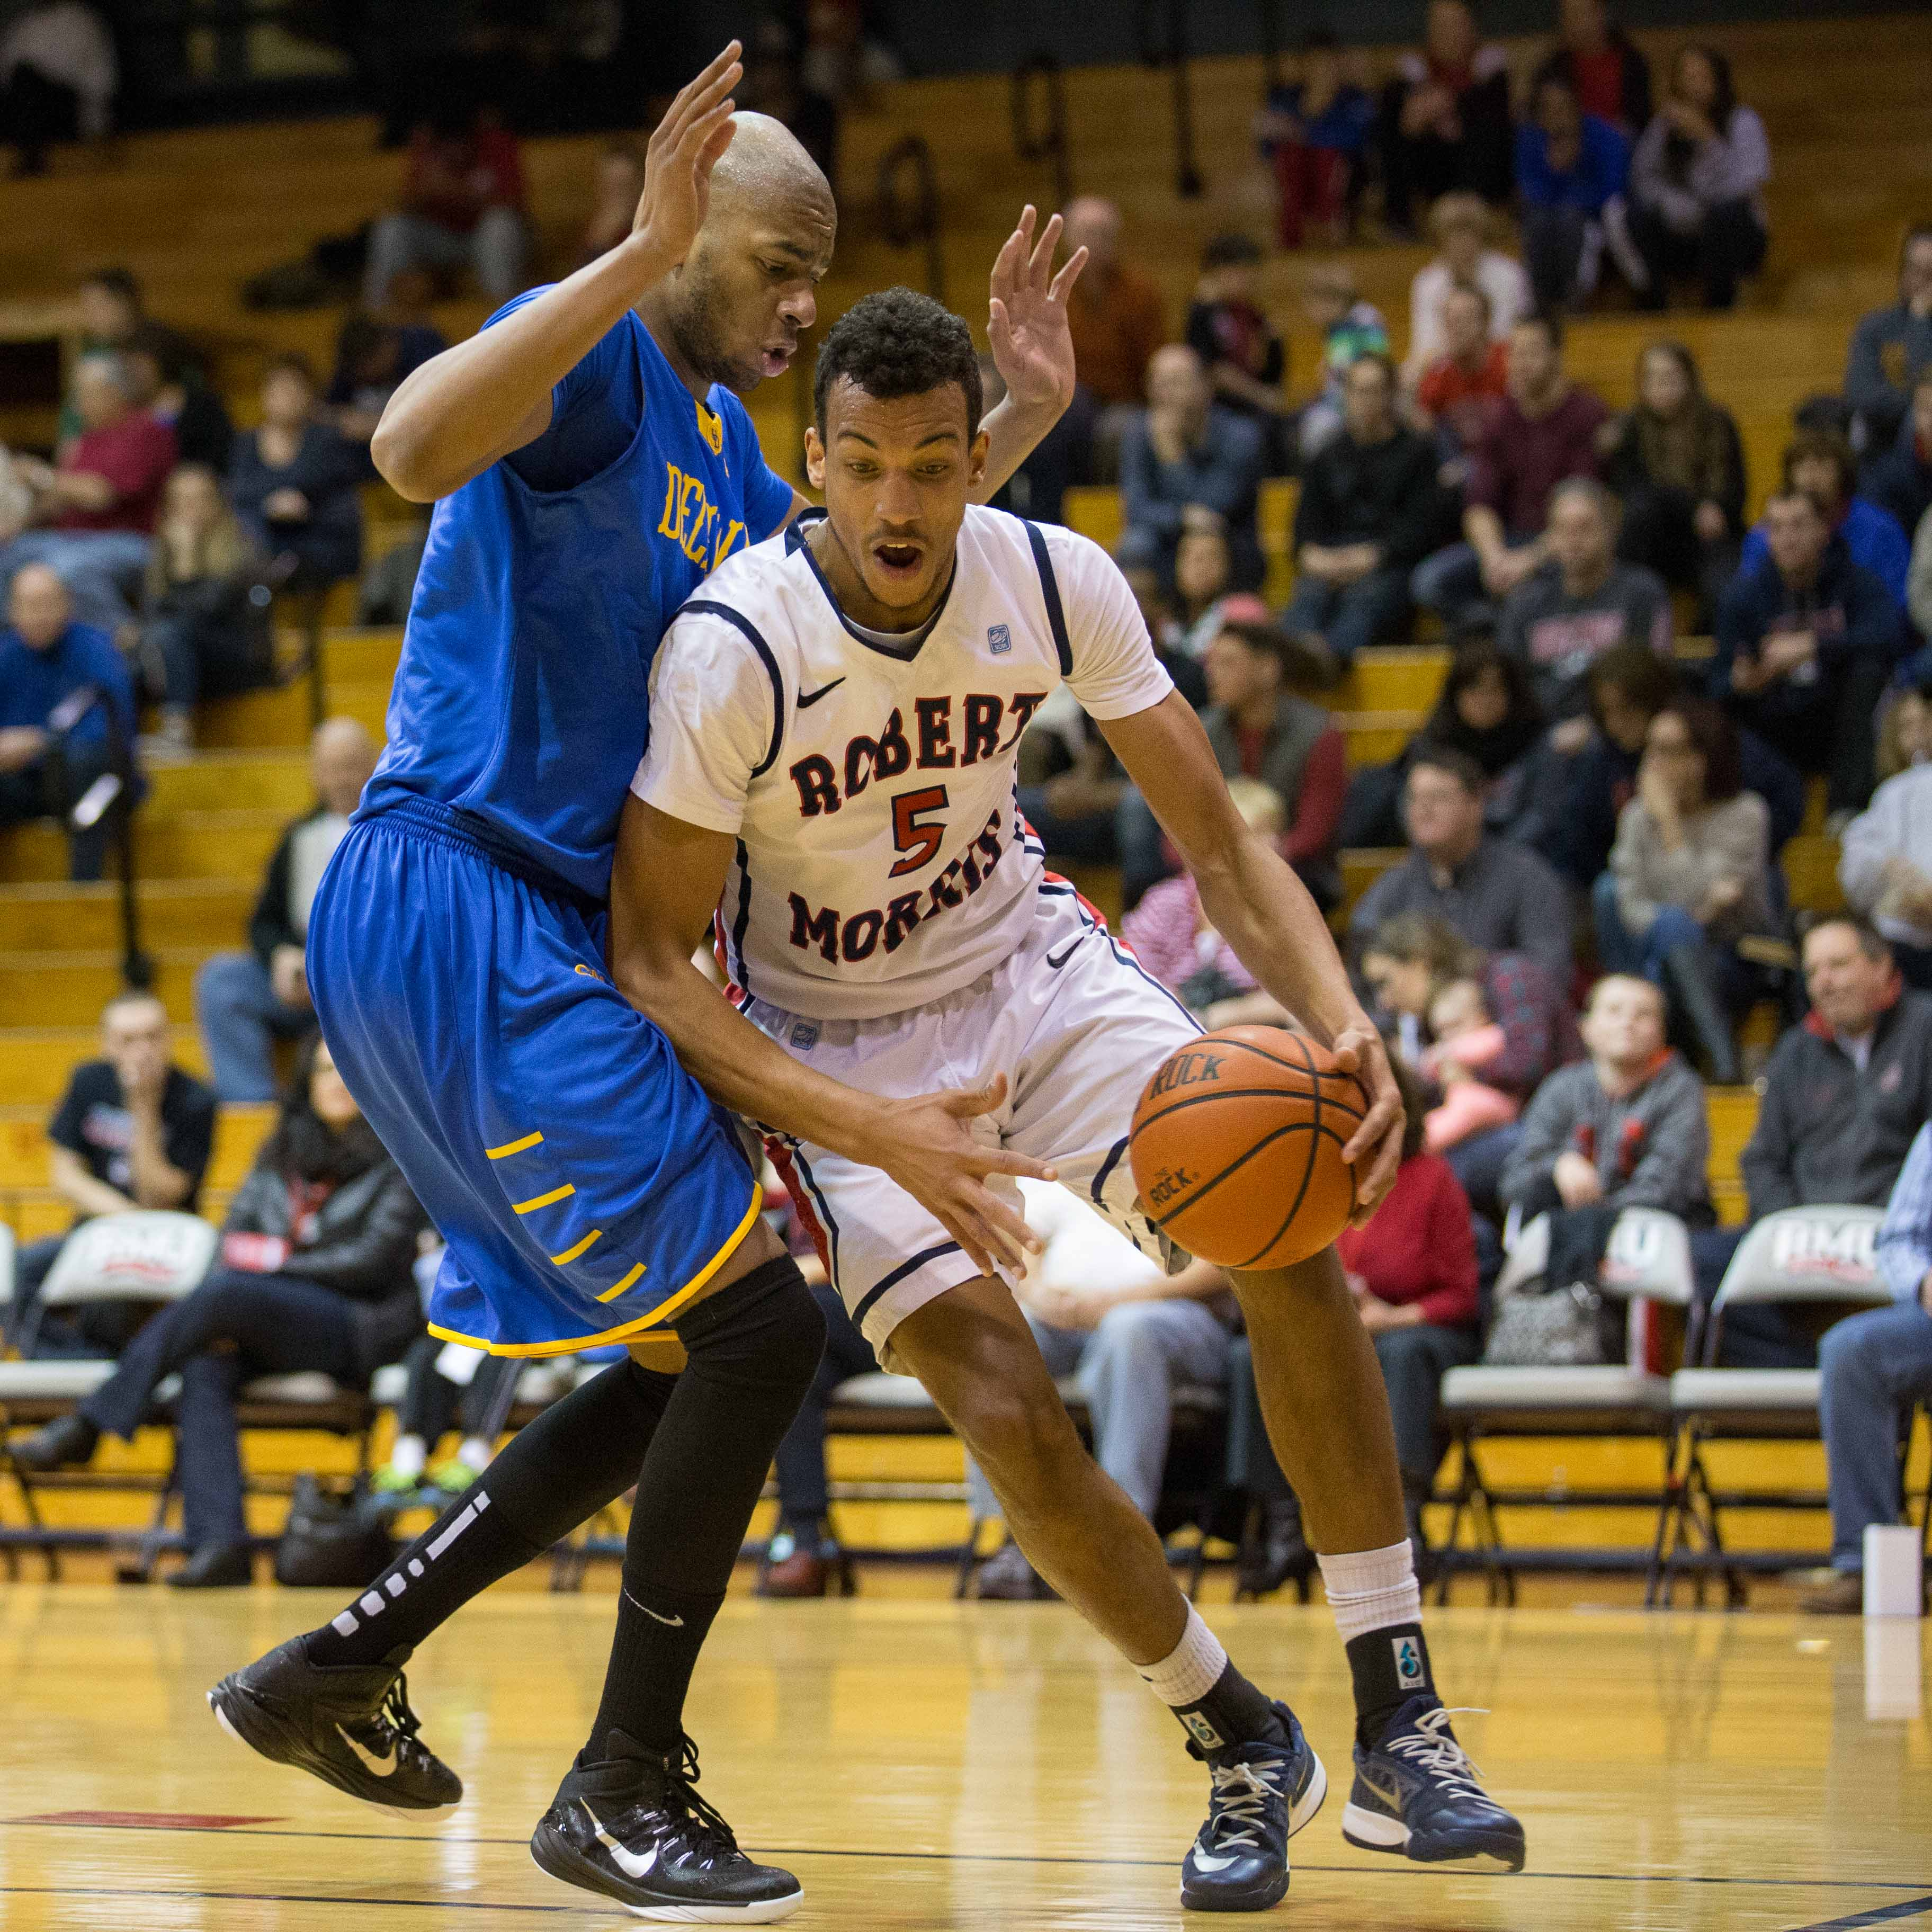 RMU sank 17 consecutive free throws in the second half en route to its 84-81 win over Delaware.